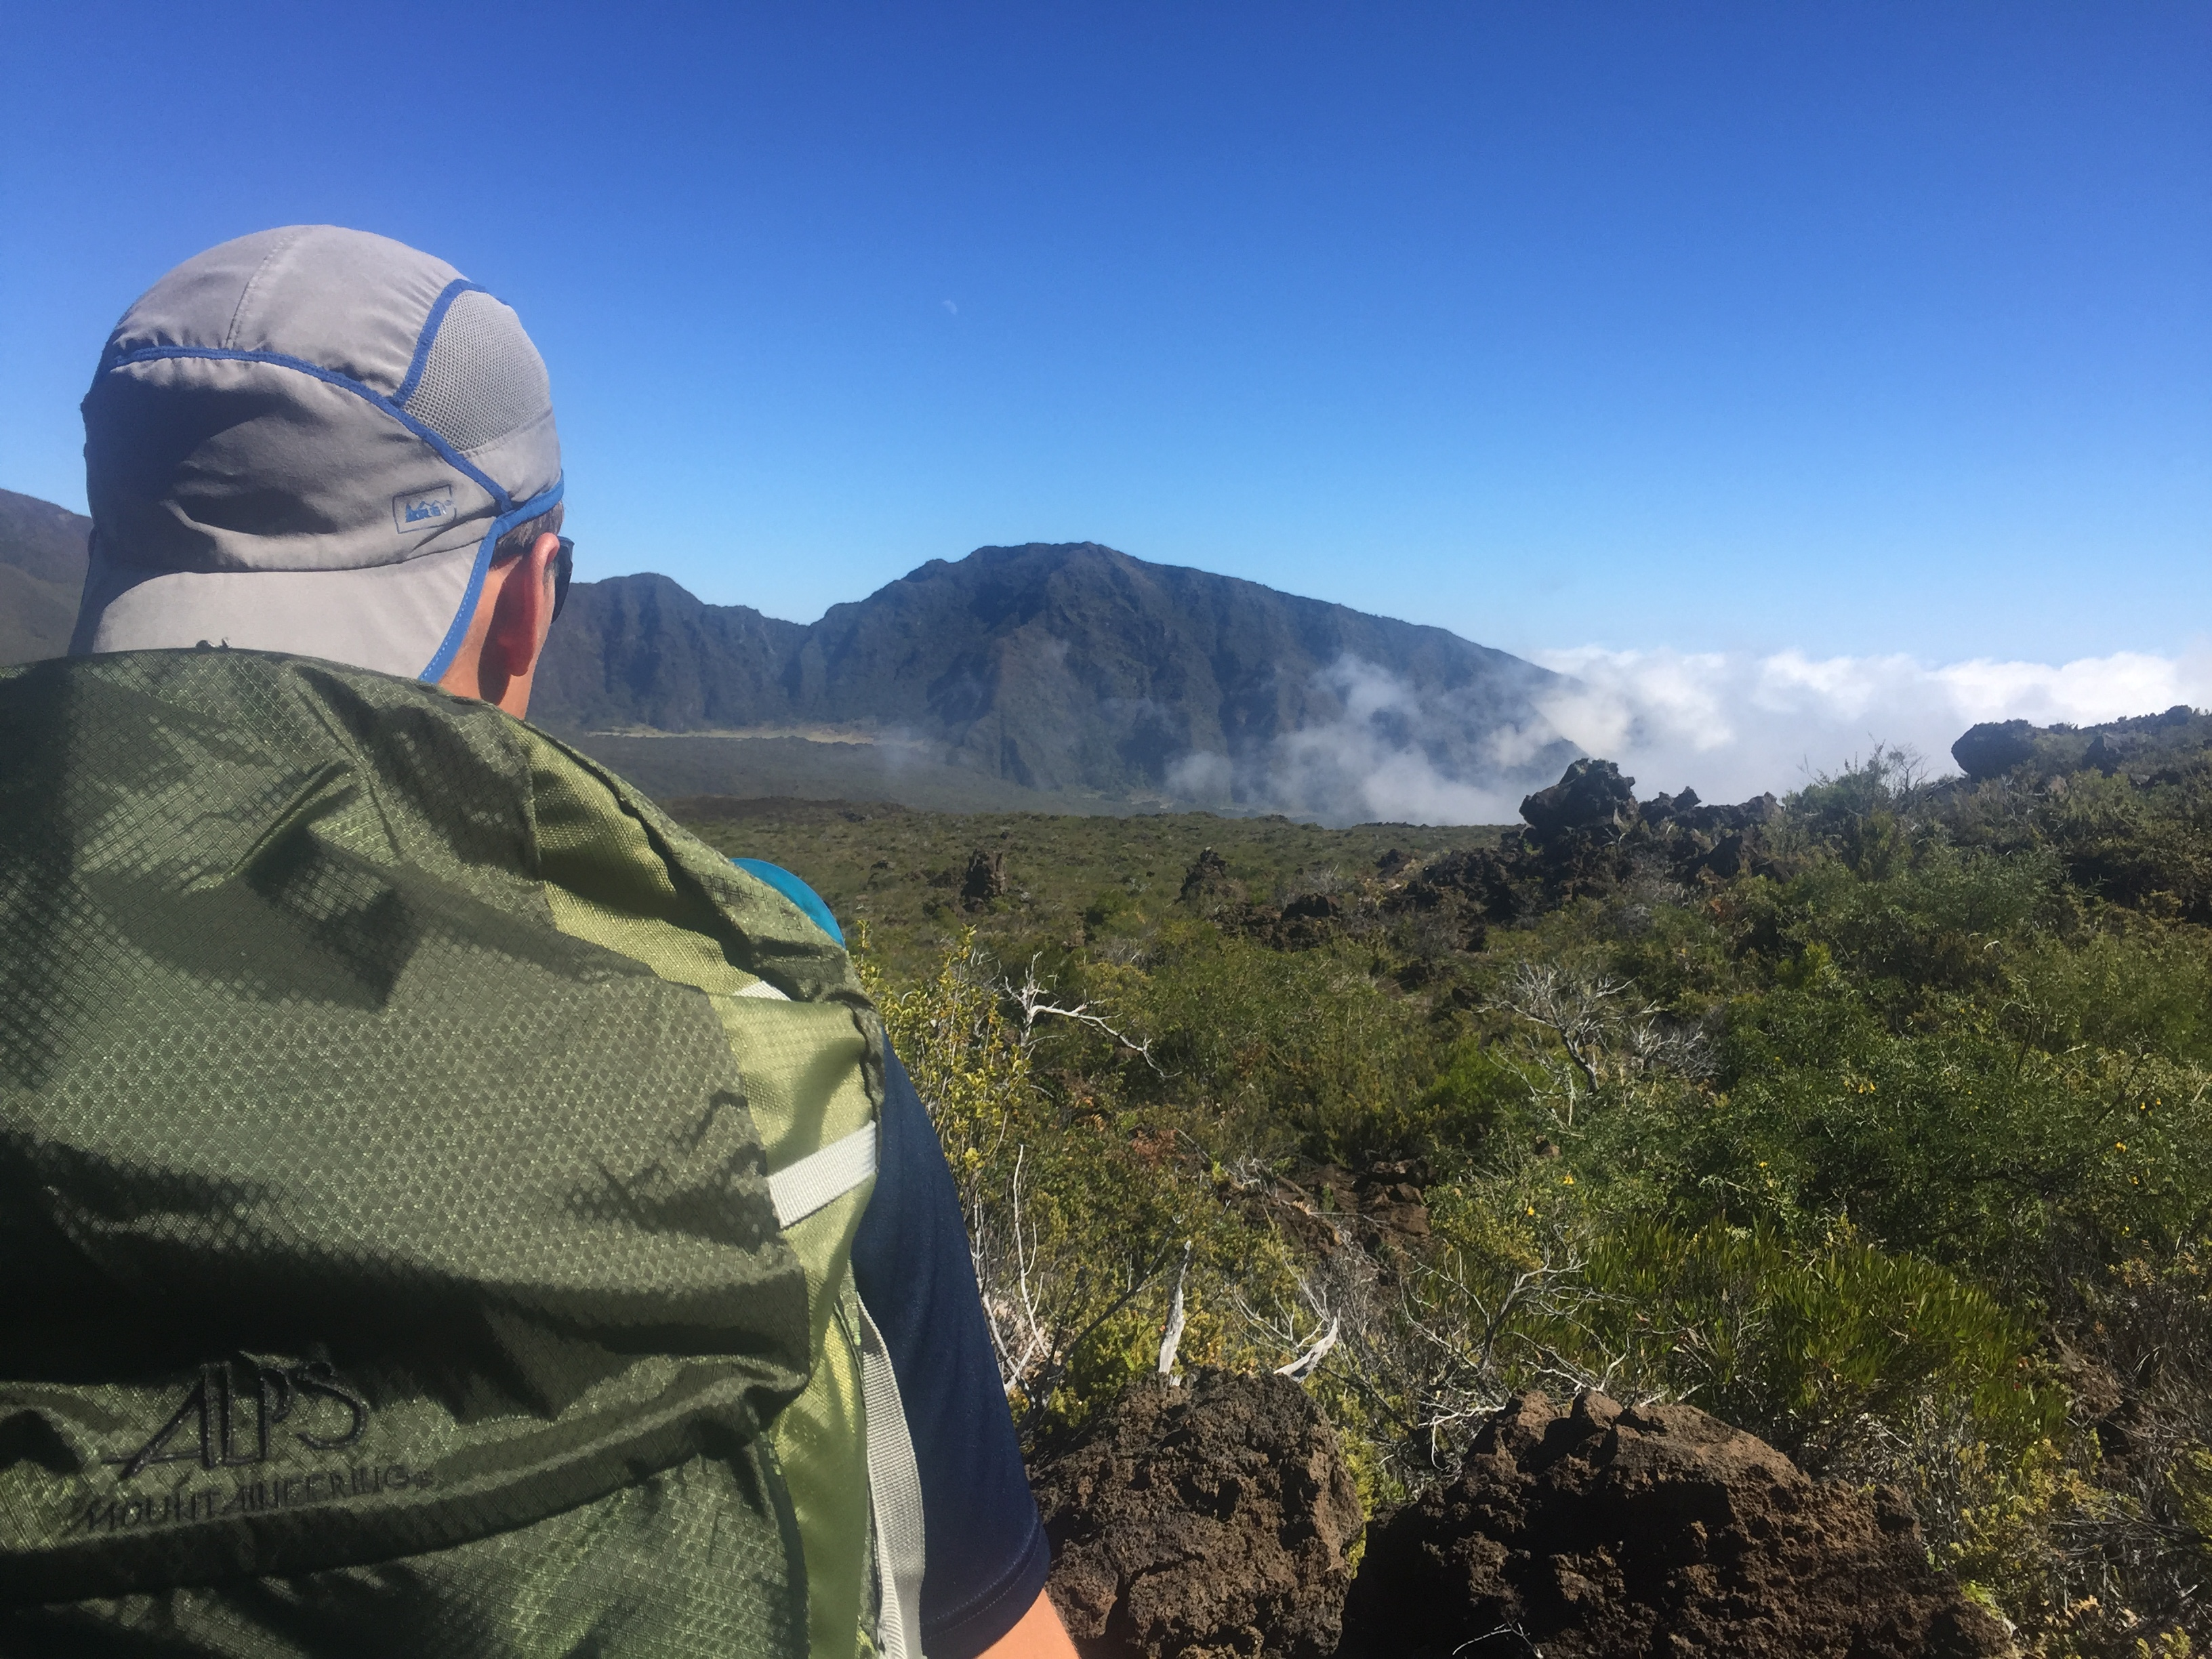 Podcast Episode #41: Going Deeper in the Parks, ft. Everglades and Haleakala